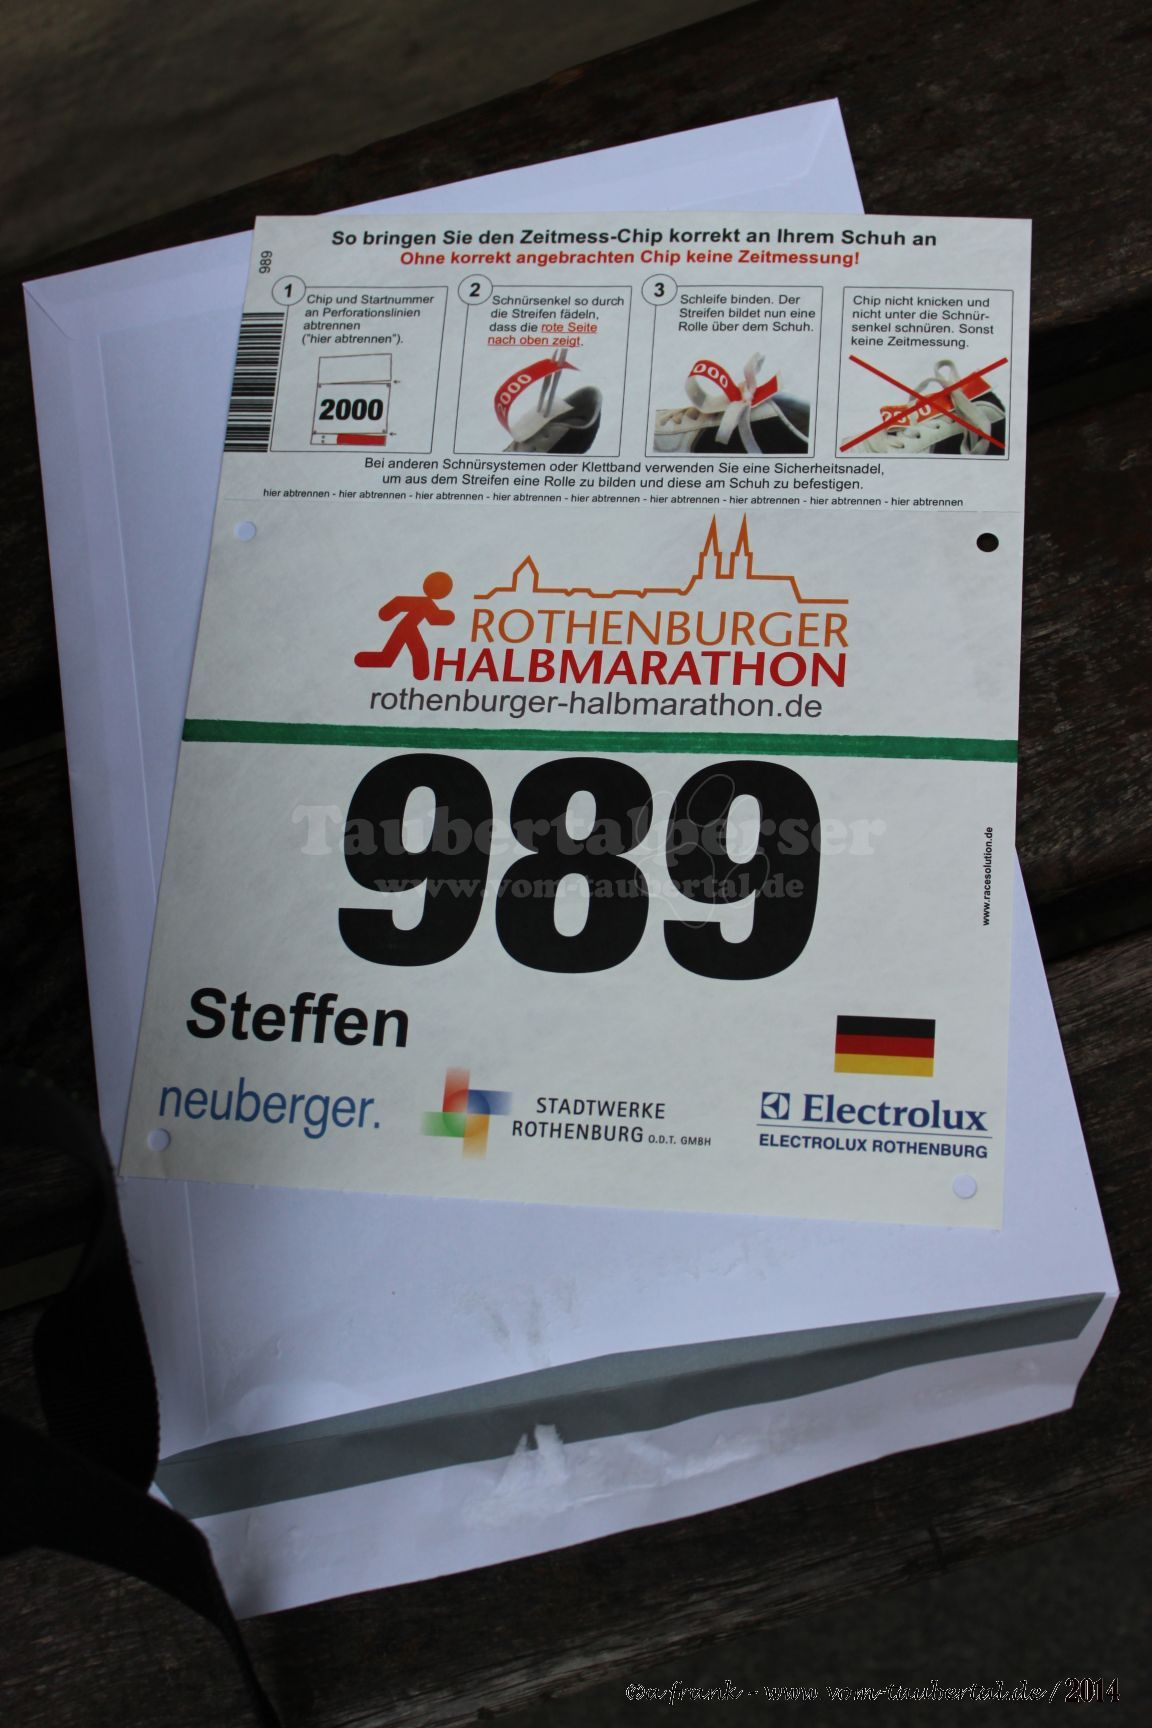 Rothenburger Halbmarathon 2014